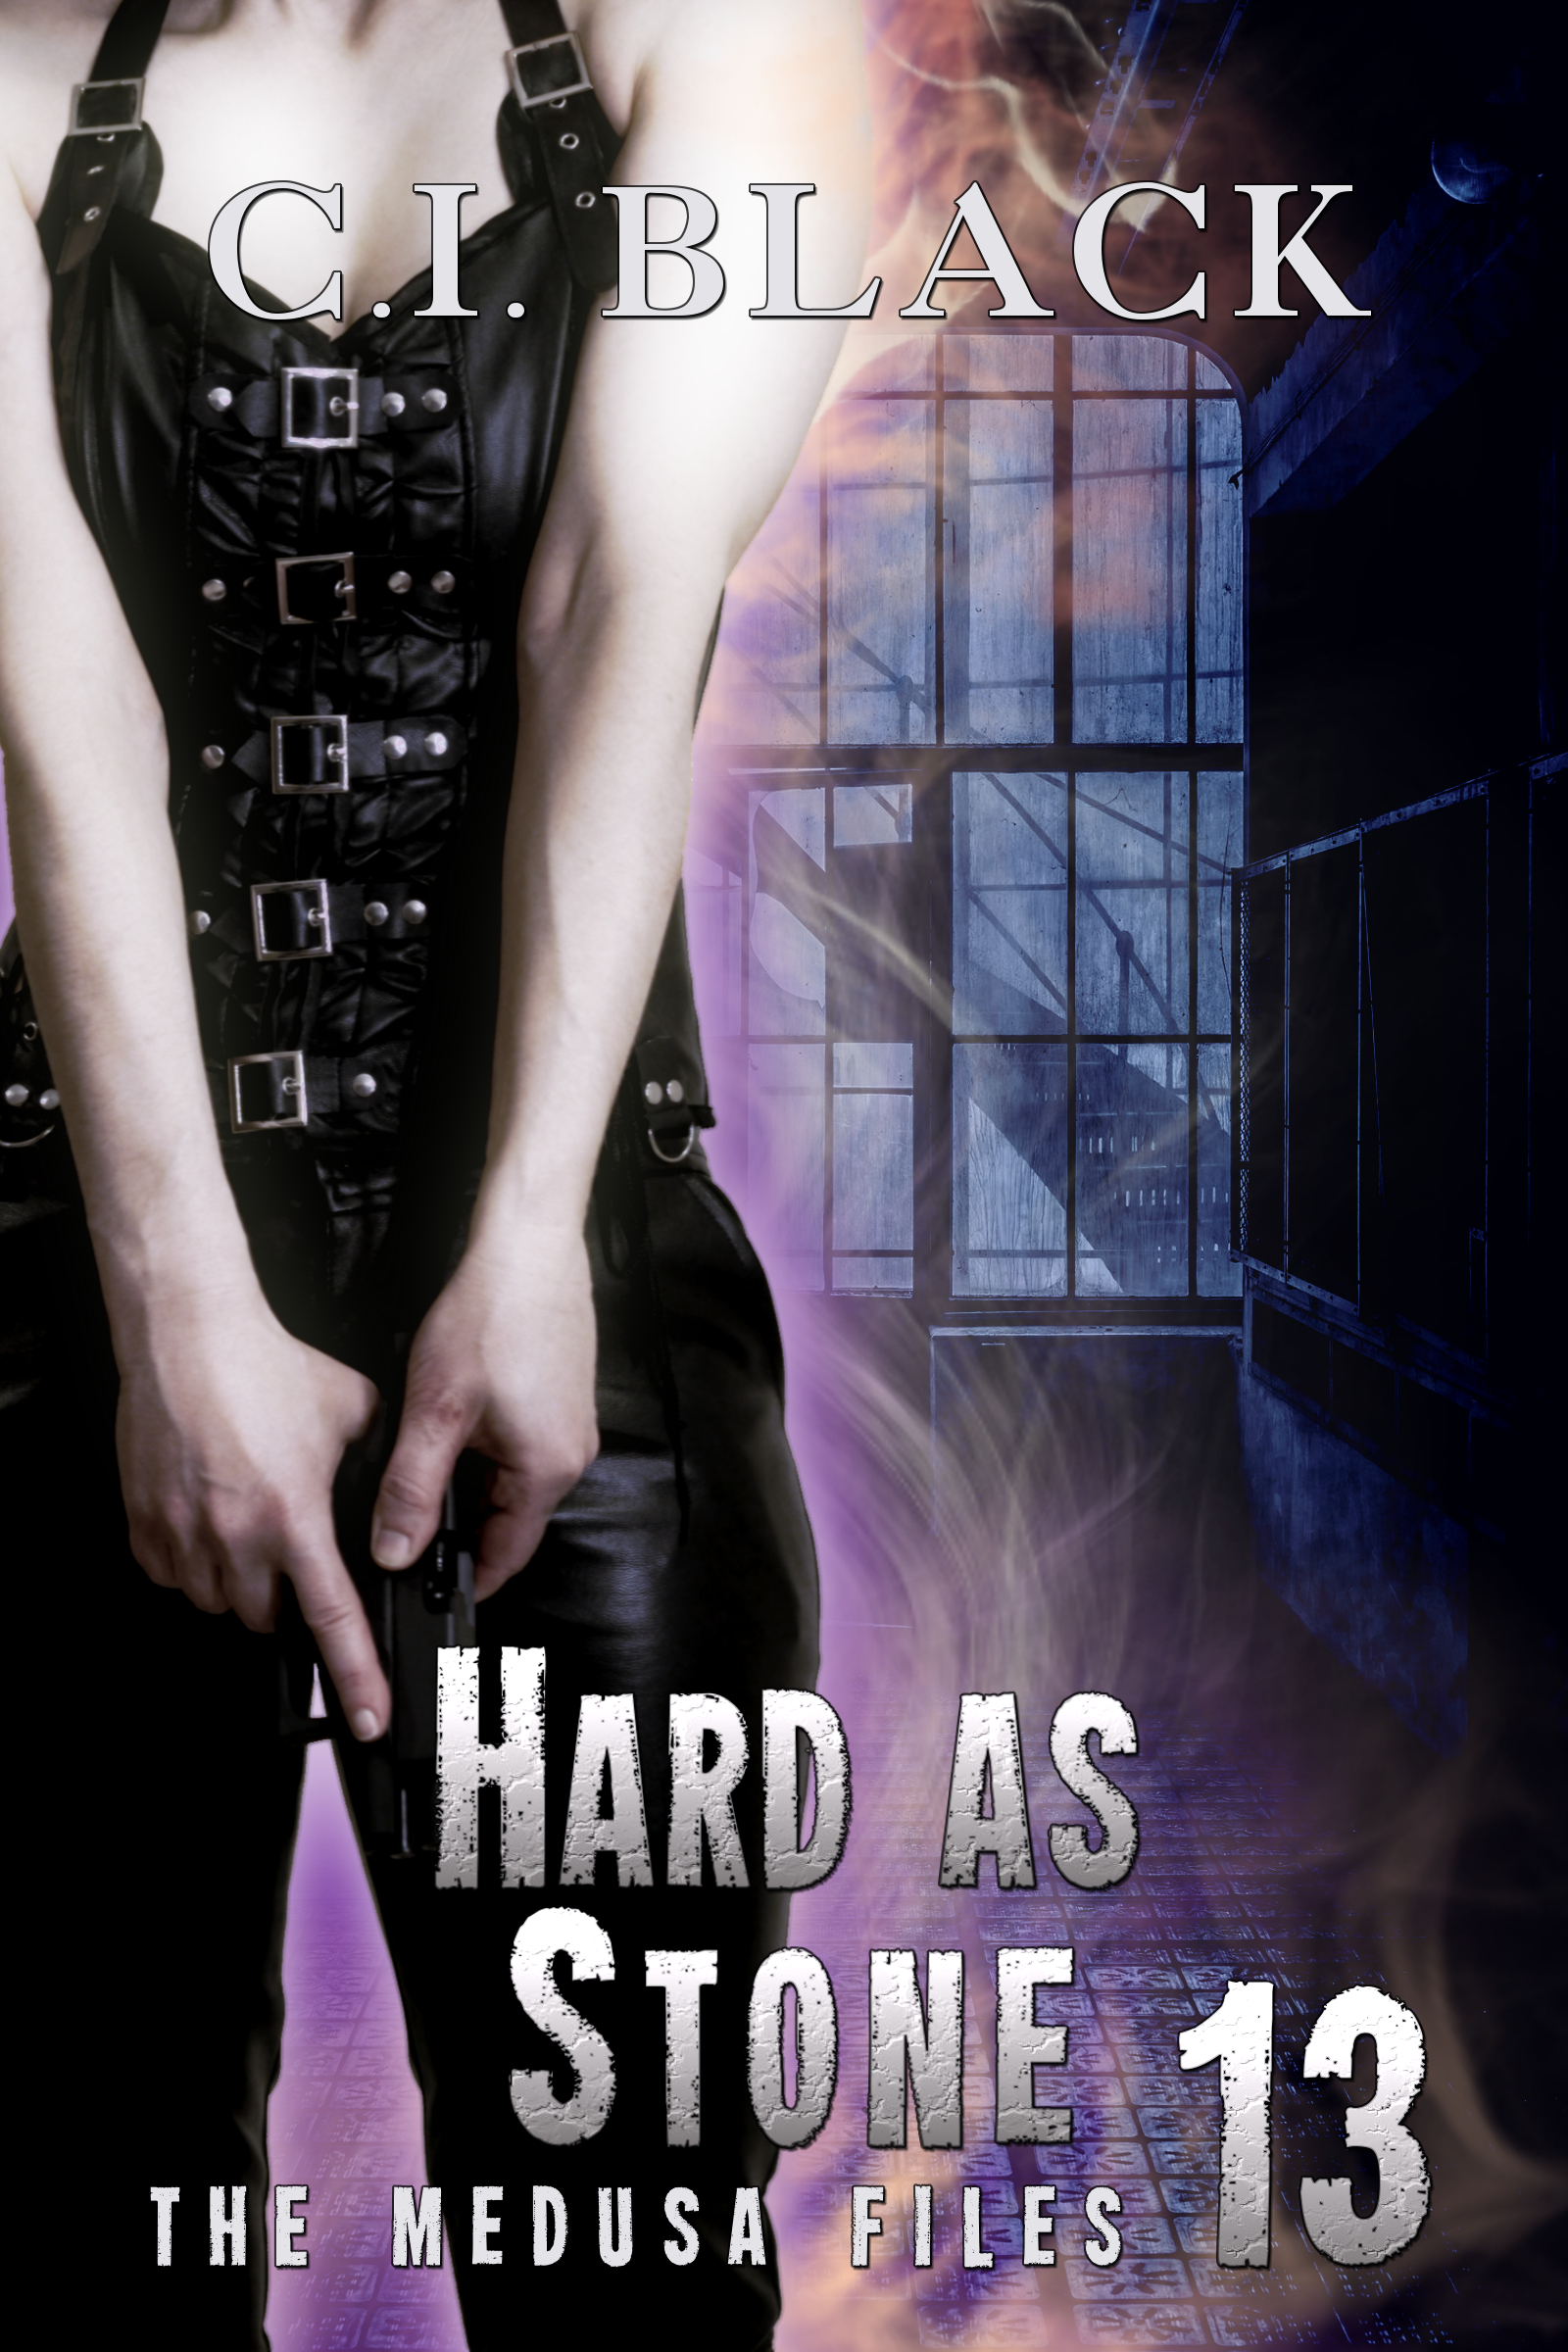 The Medusa Files, case 13: Hard As Stone, an urban fantasy / paranormal romance and the thirteenth and final book in the Medusa Files series by C.I. Black